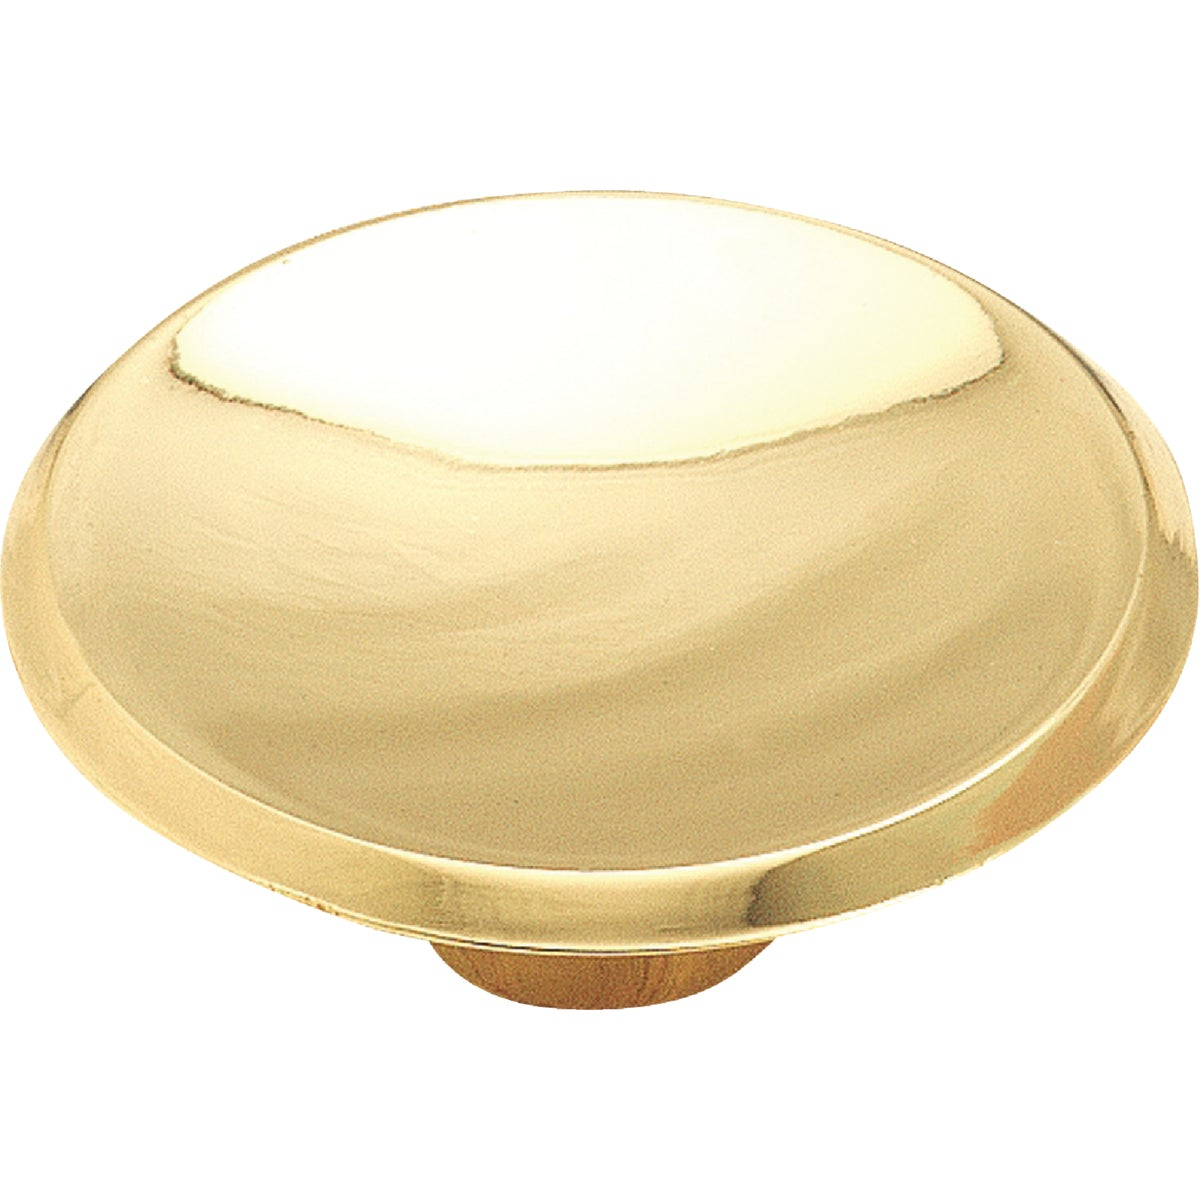 "1-3/4"" PB MODERN KNOB - BP3414-3 by Amerock Corporation"